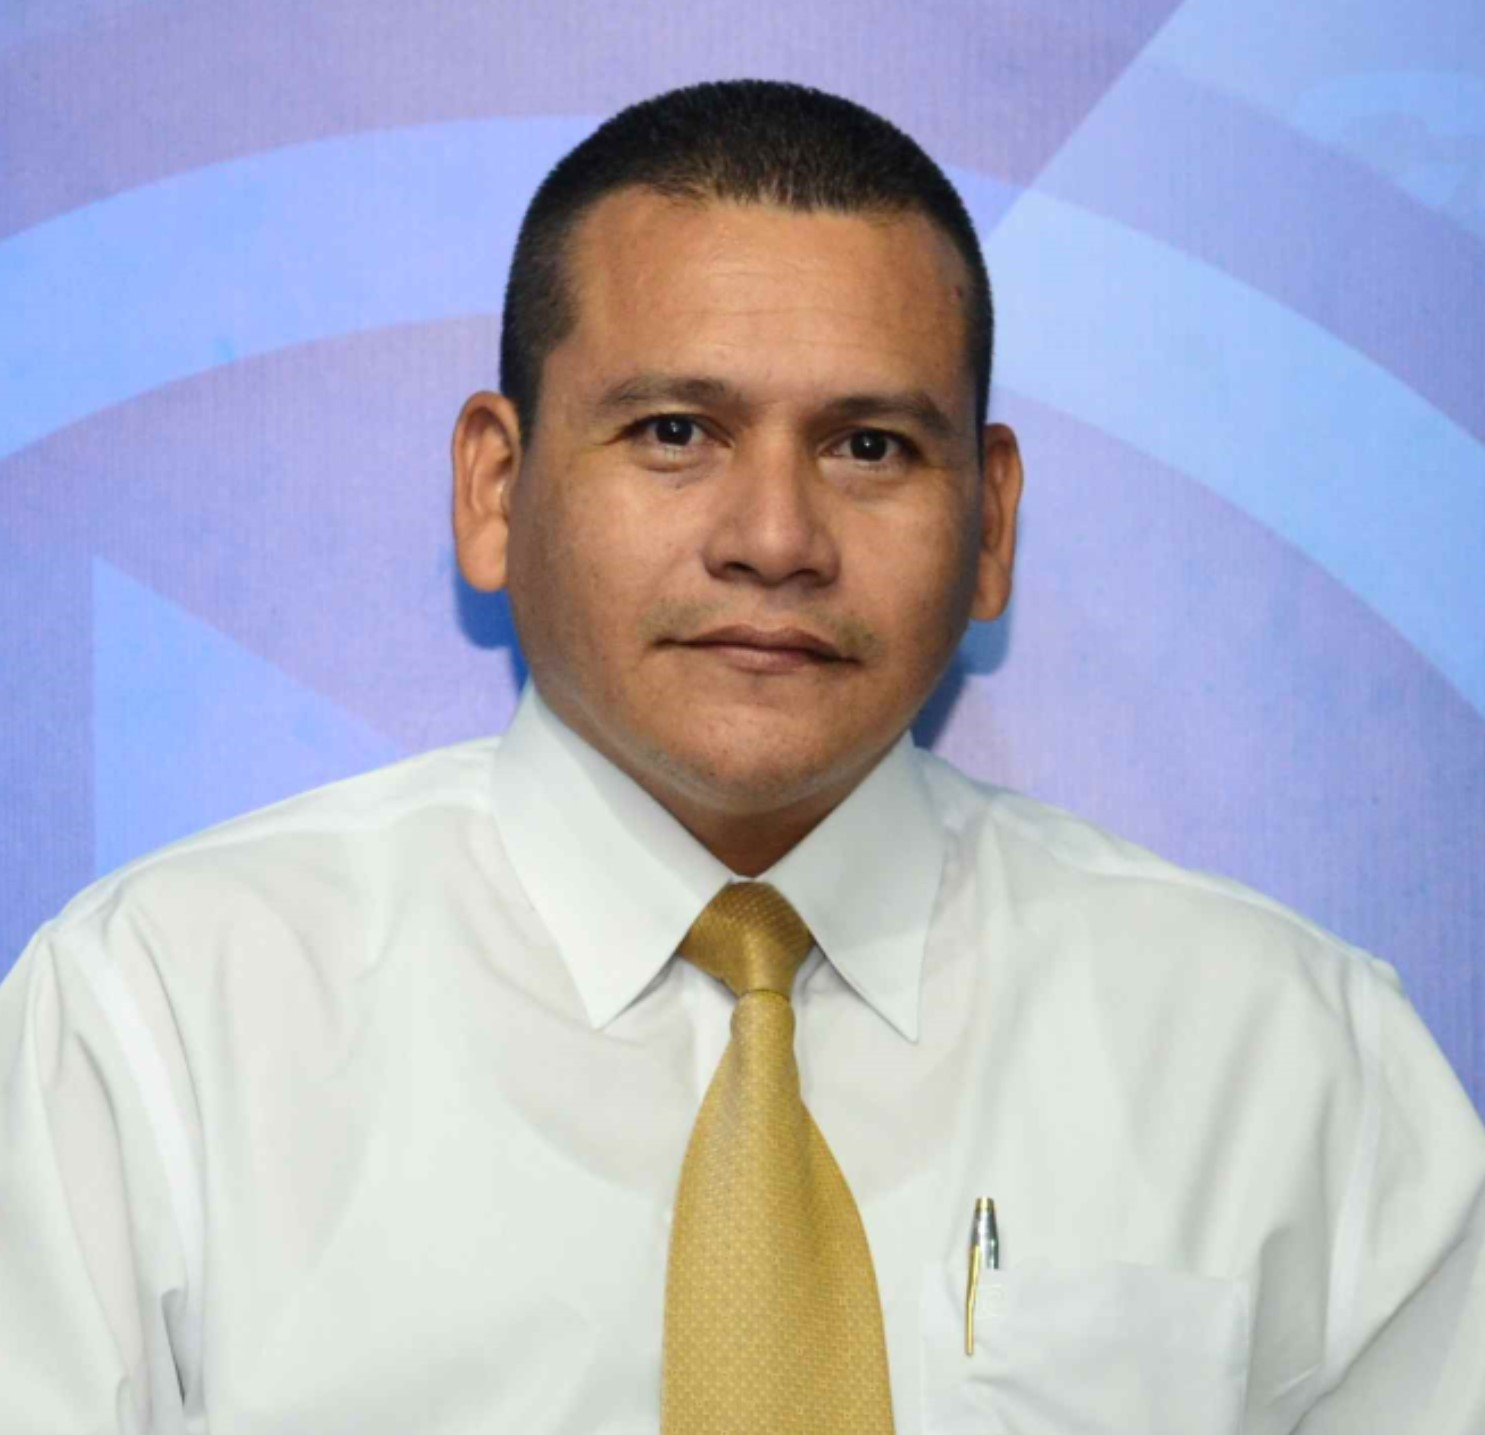 William Alexander Hernández Reyes